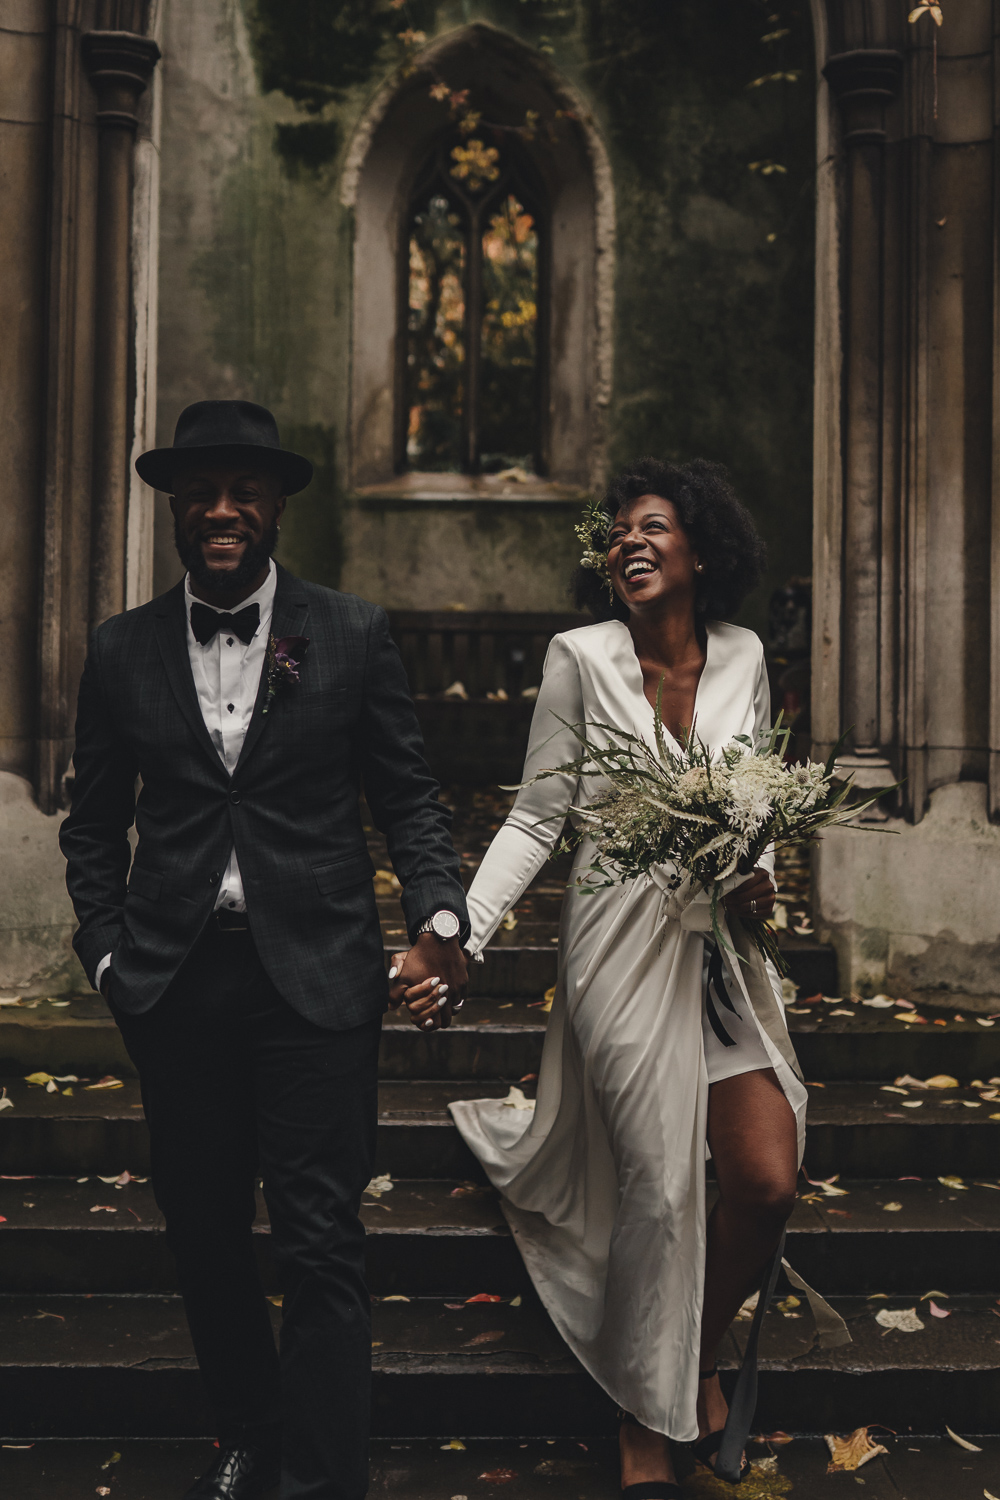 Alternative and Stylish Black Couple Wedding in St Dunstans in the East | The Chamberlins Alternative London Wedding Photography